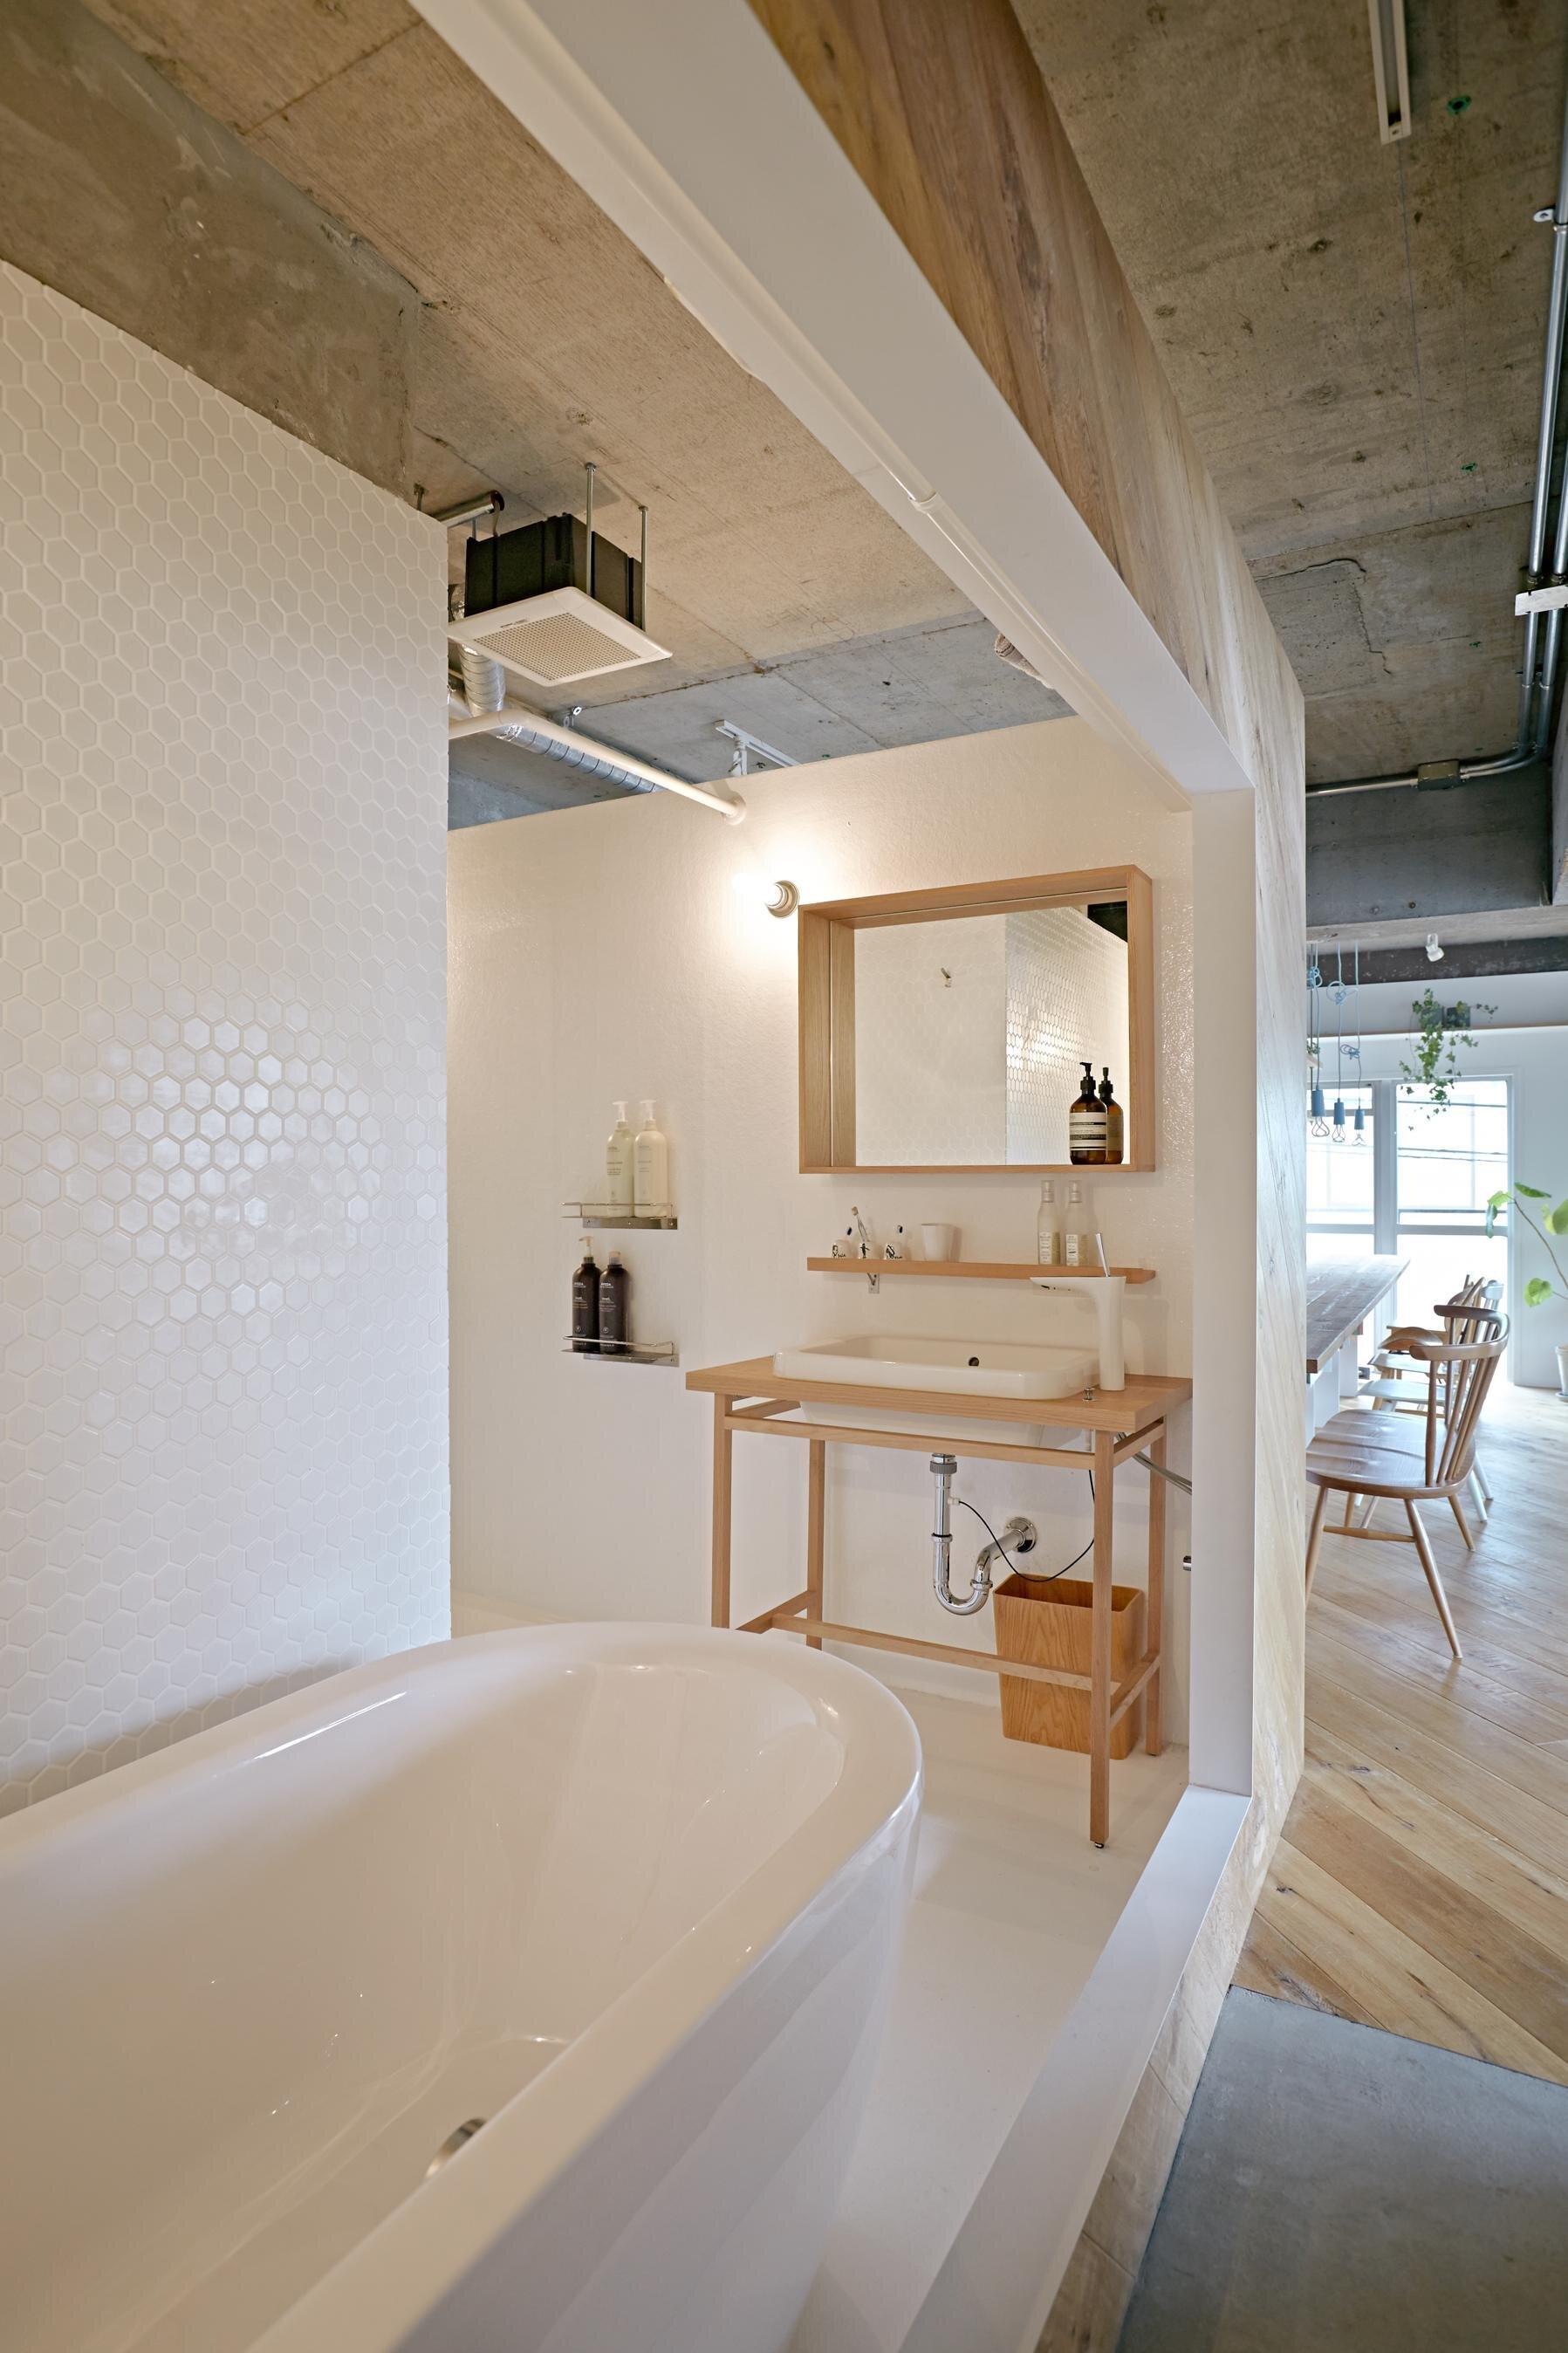 Tenhachi House - .8 Tenhachi Architect & Interior Design - Tokyo - Bathroom - Humble Homes